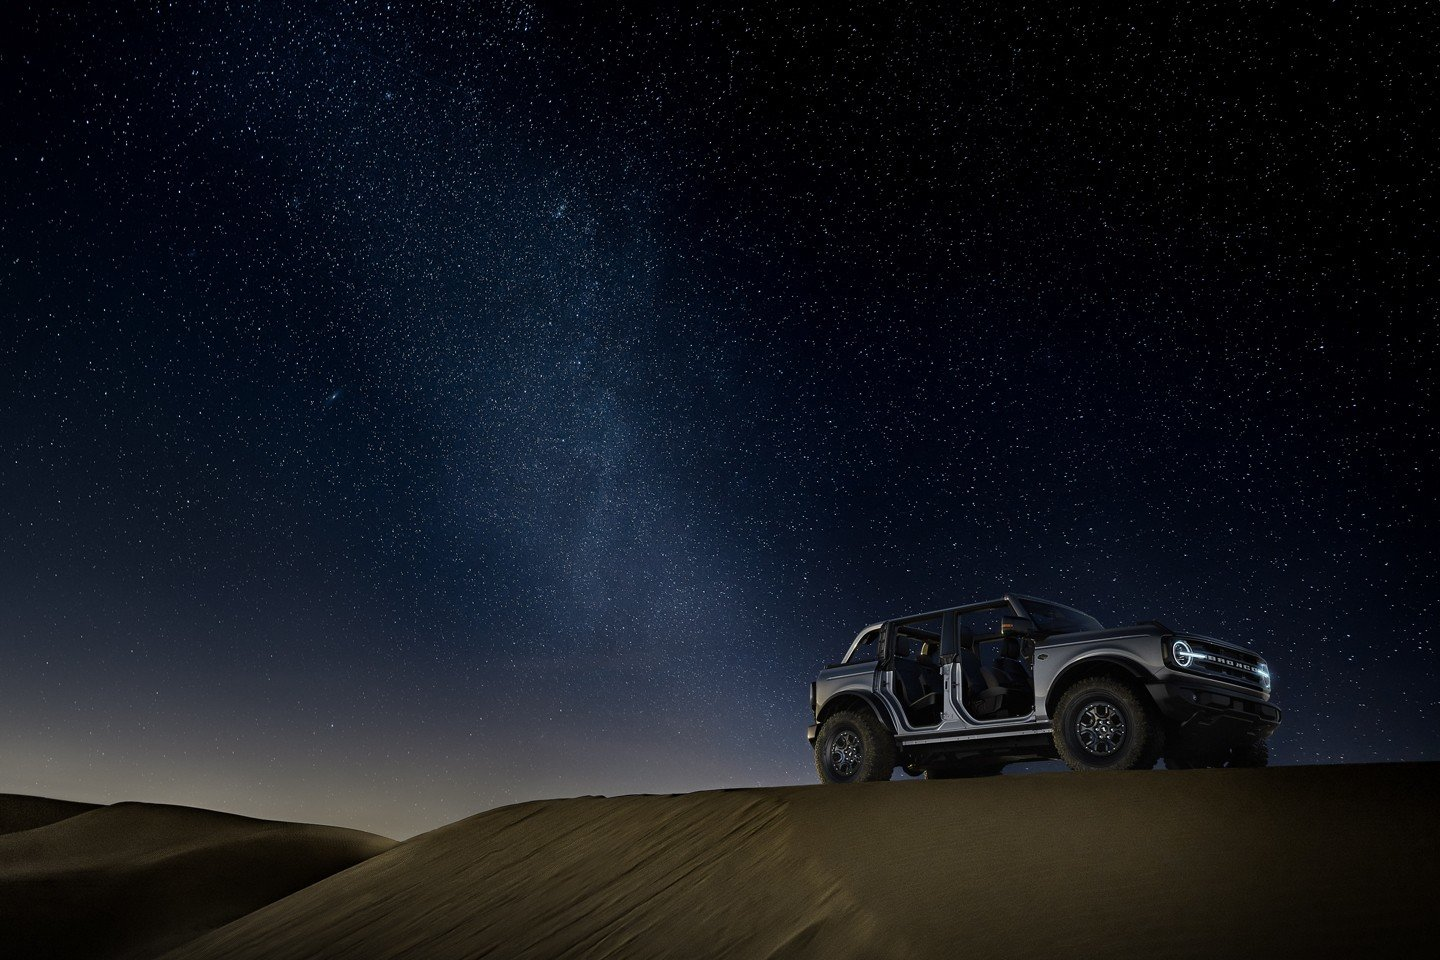 ford bronco in the desert